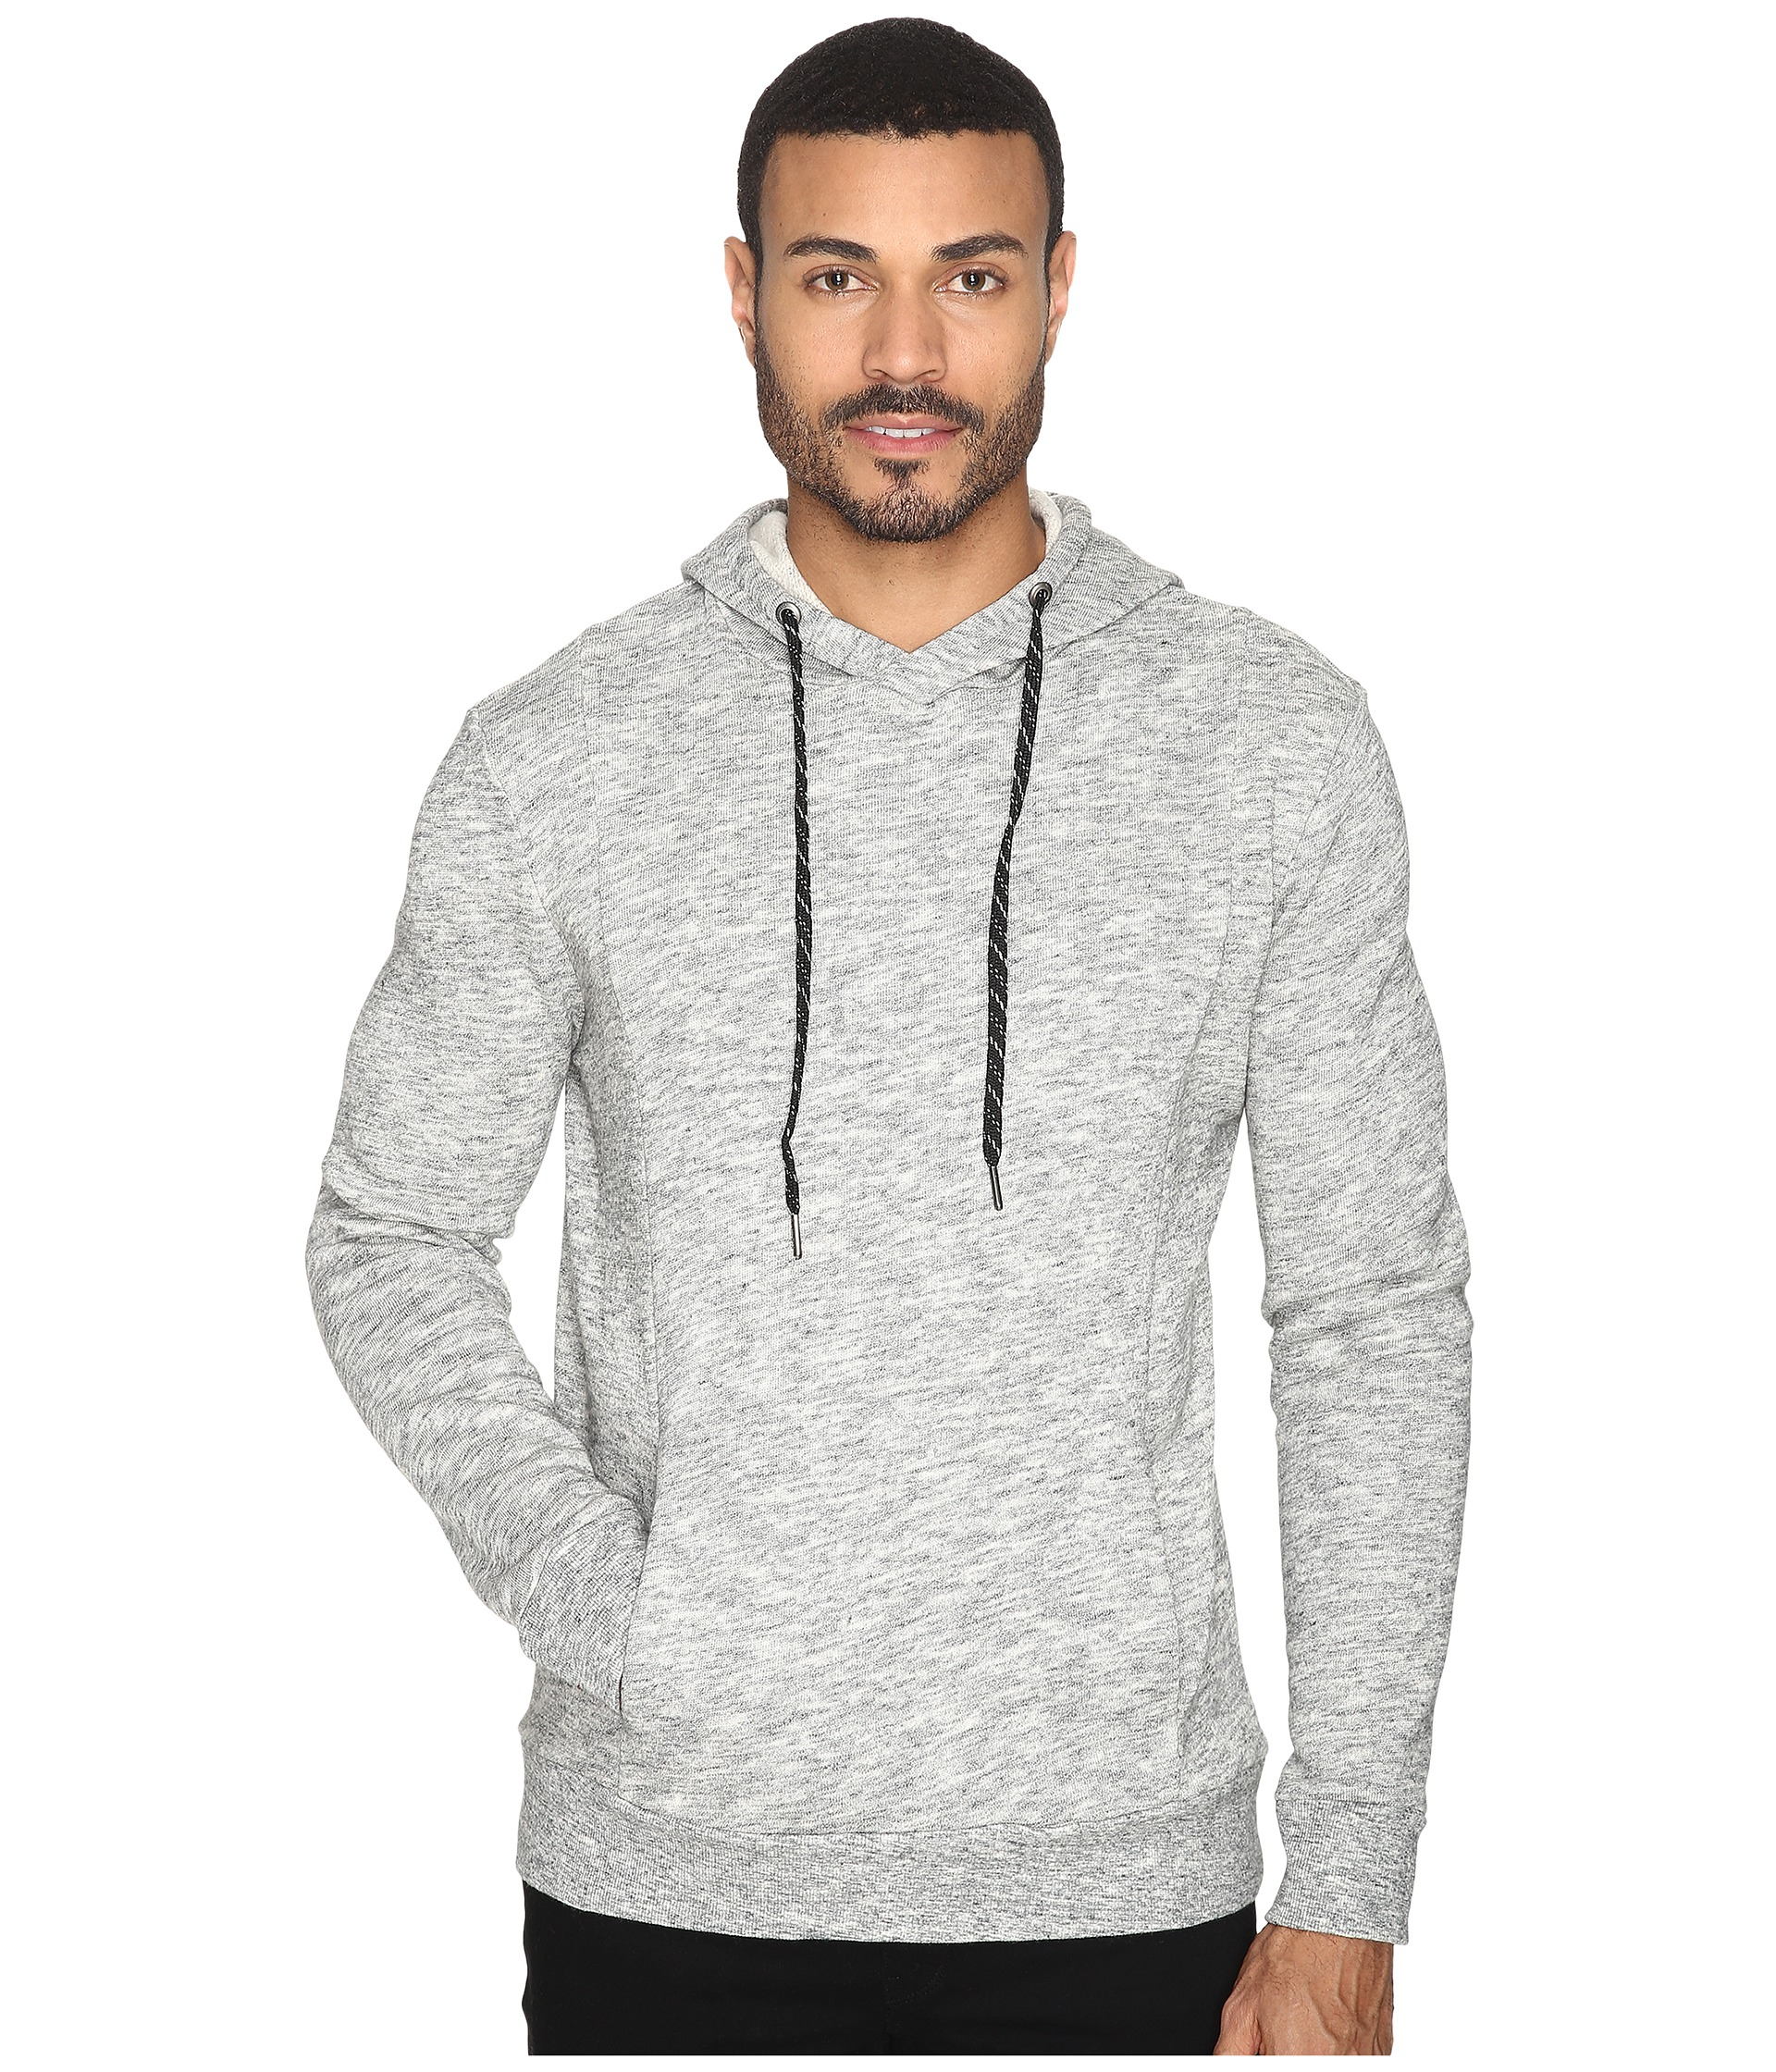 Pullover Hoodies Hoodies & Sweatshirts All Tops Hoodies & Sweatshirts View All Full-Zip Hoodies Pullover Hoodies Crewneck Sweaters View All Crew Neck Sweaters V-Neck Sweaters T-Shirts & Henleys View All Short-Sleeve T-Shirts Because, after all, who wouldn't want a Hollister pullover? Our newest hoodies are made of terry fabric that has a.